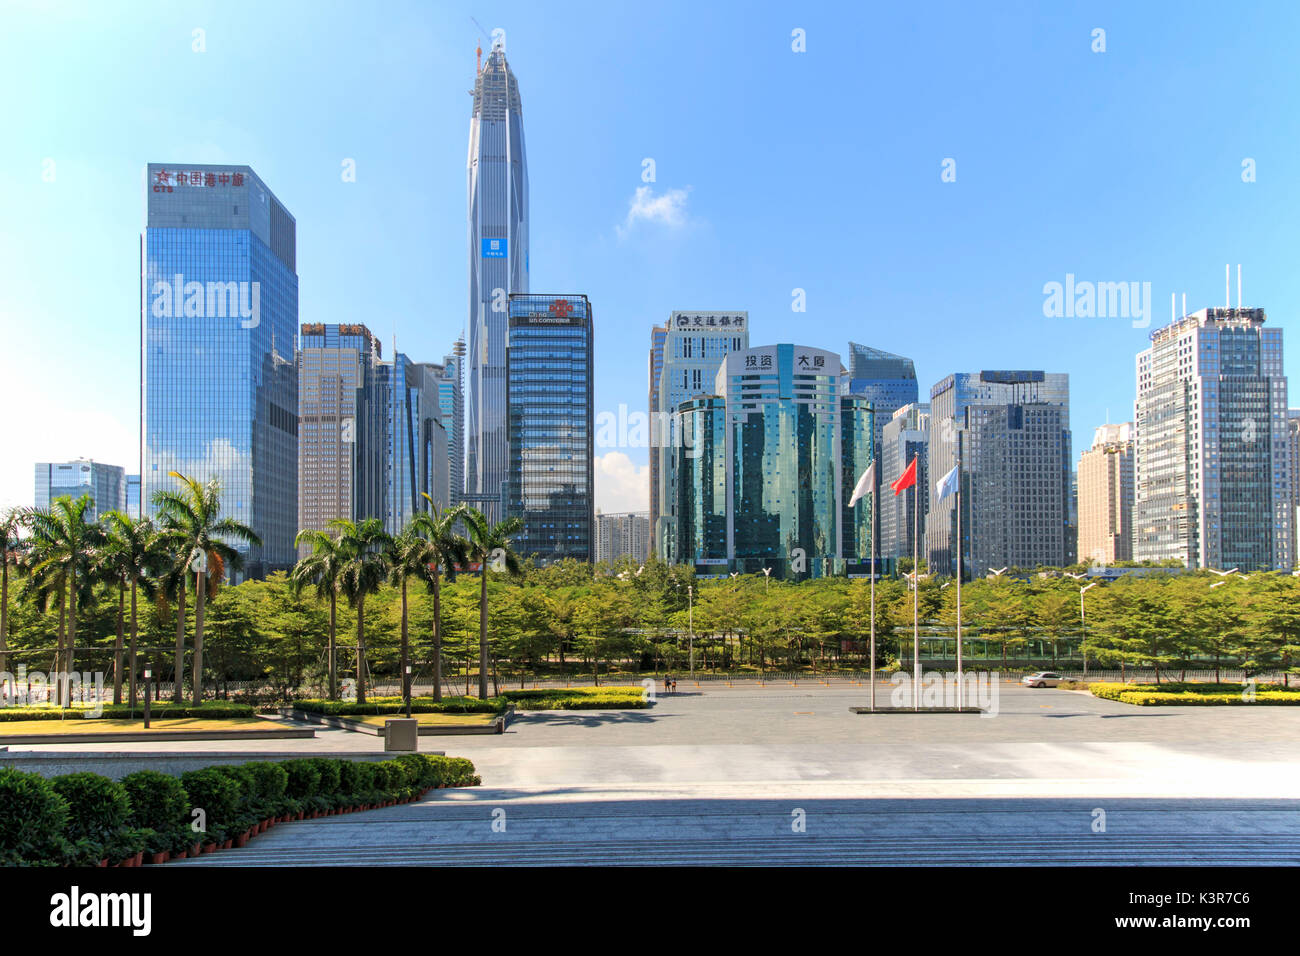 Shenzhen skyline as seen from the Stock Exchange building with the KK100, the second tallest building of the city, on background, China - Stock Image